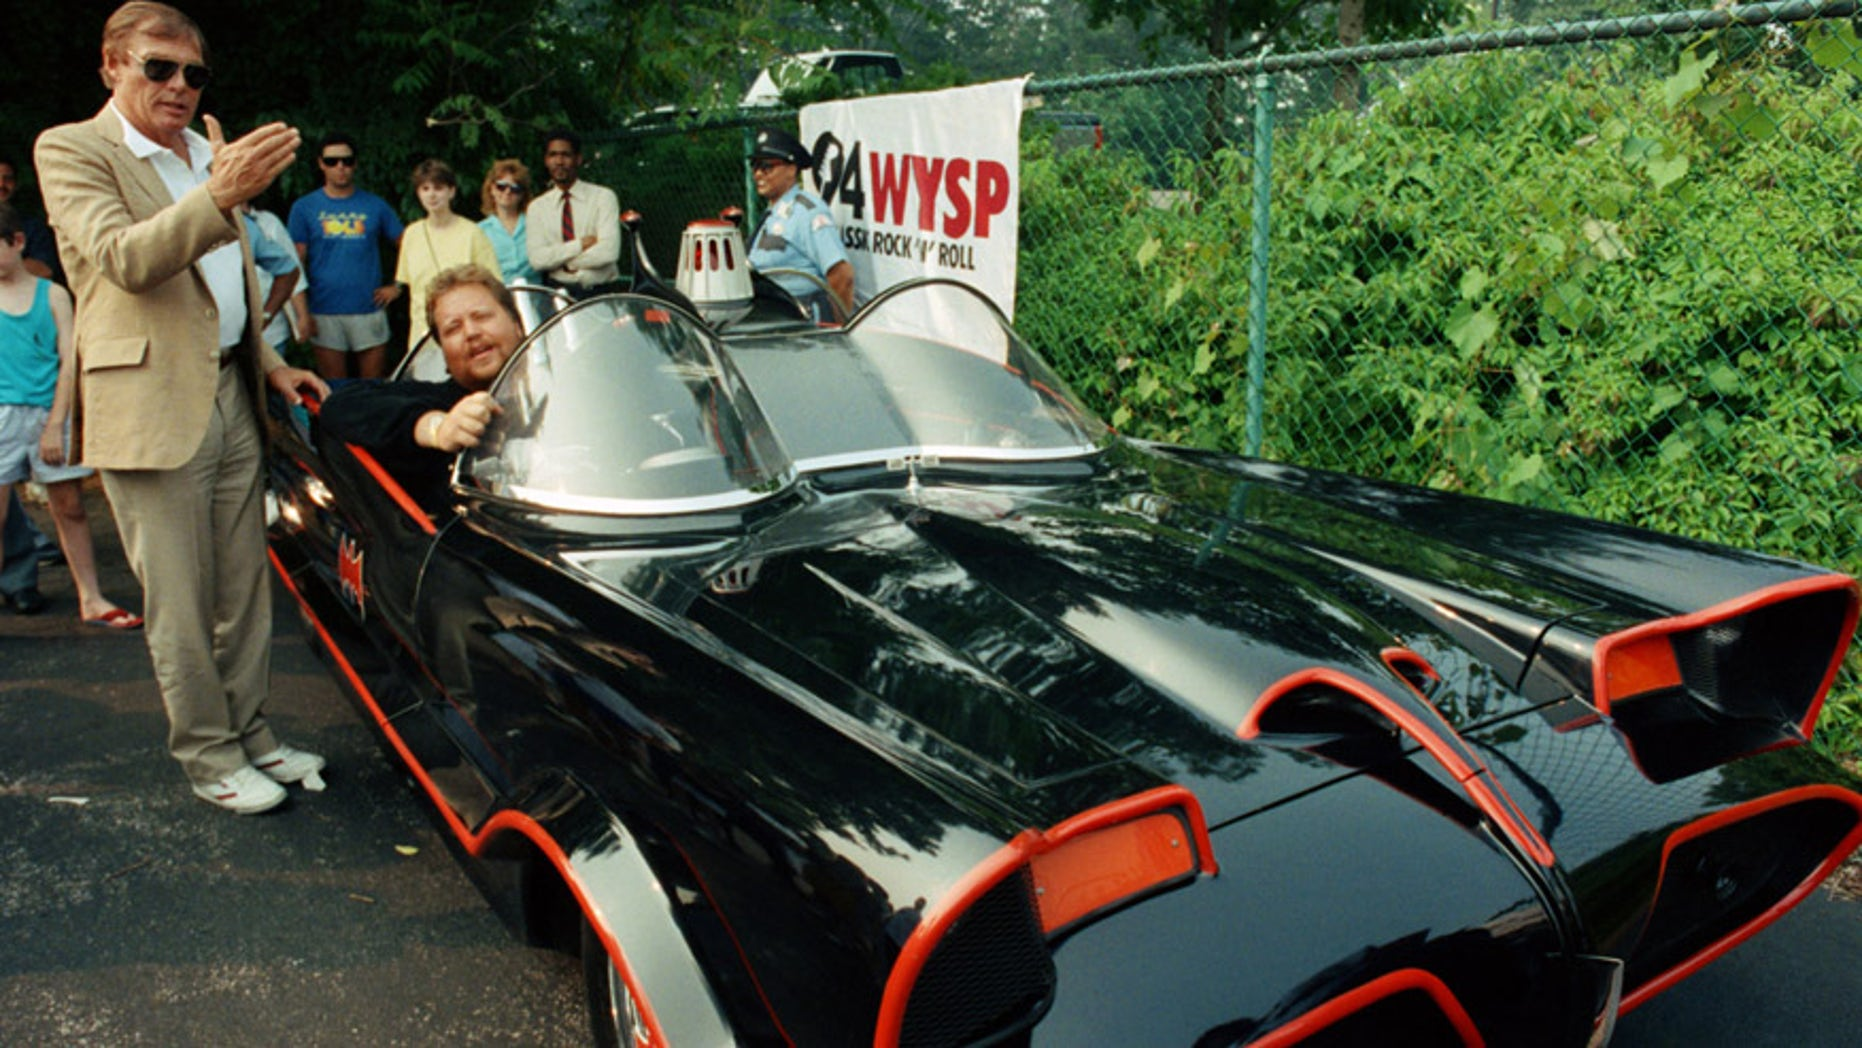 FILE - In this June 27, 1989 file photo, the original Batman, Adam West, left, stands beside the old Batmobile driven by owner Scott Chinery in Philadelphia. Batman won't have to worry about Batmobile knockoffs after a federal appeals court ruled the caped crusader's vehicle is entitled to copyright protection. The 9th U.S. Circuit Court of Appeals said Wednesday, Sept. 23, 2015, the Batmobile's bat-like appearance and other distinct traits make it a character that can't be replicated without permission from DC Comics, the copyright holder.   (AP Photo/Cristy Rickard, File)